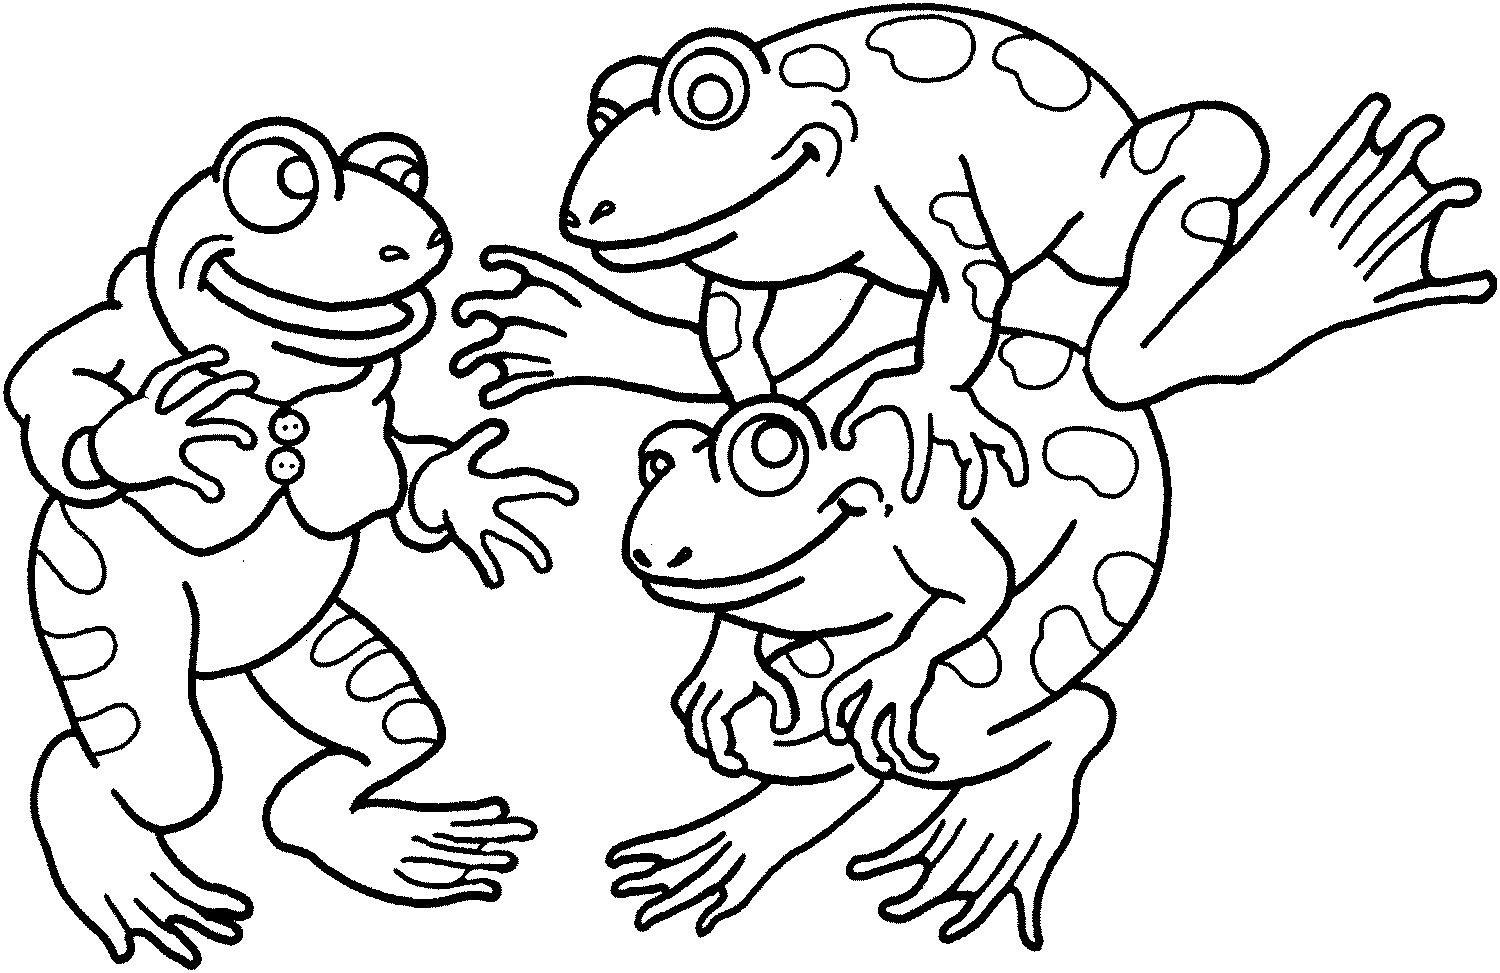 Frog Coloring Pages for Children